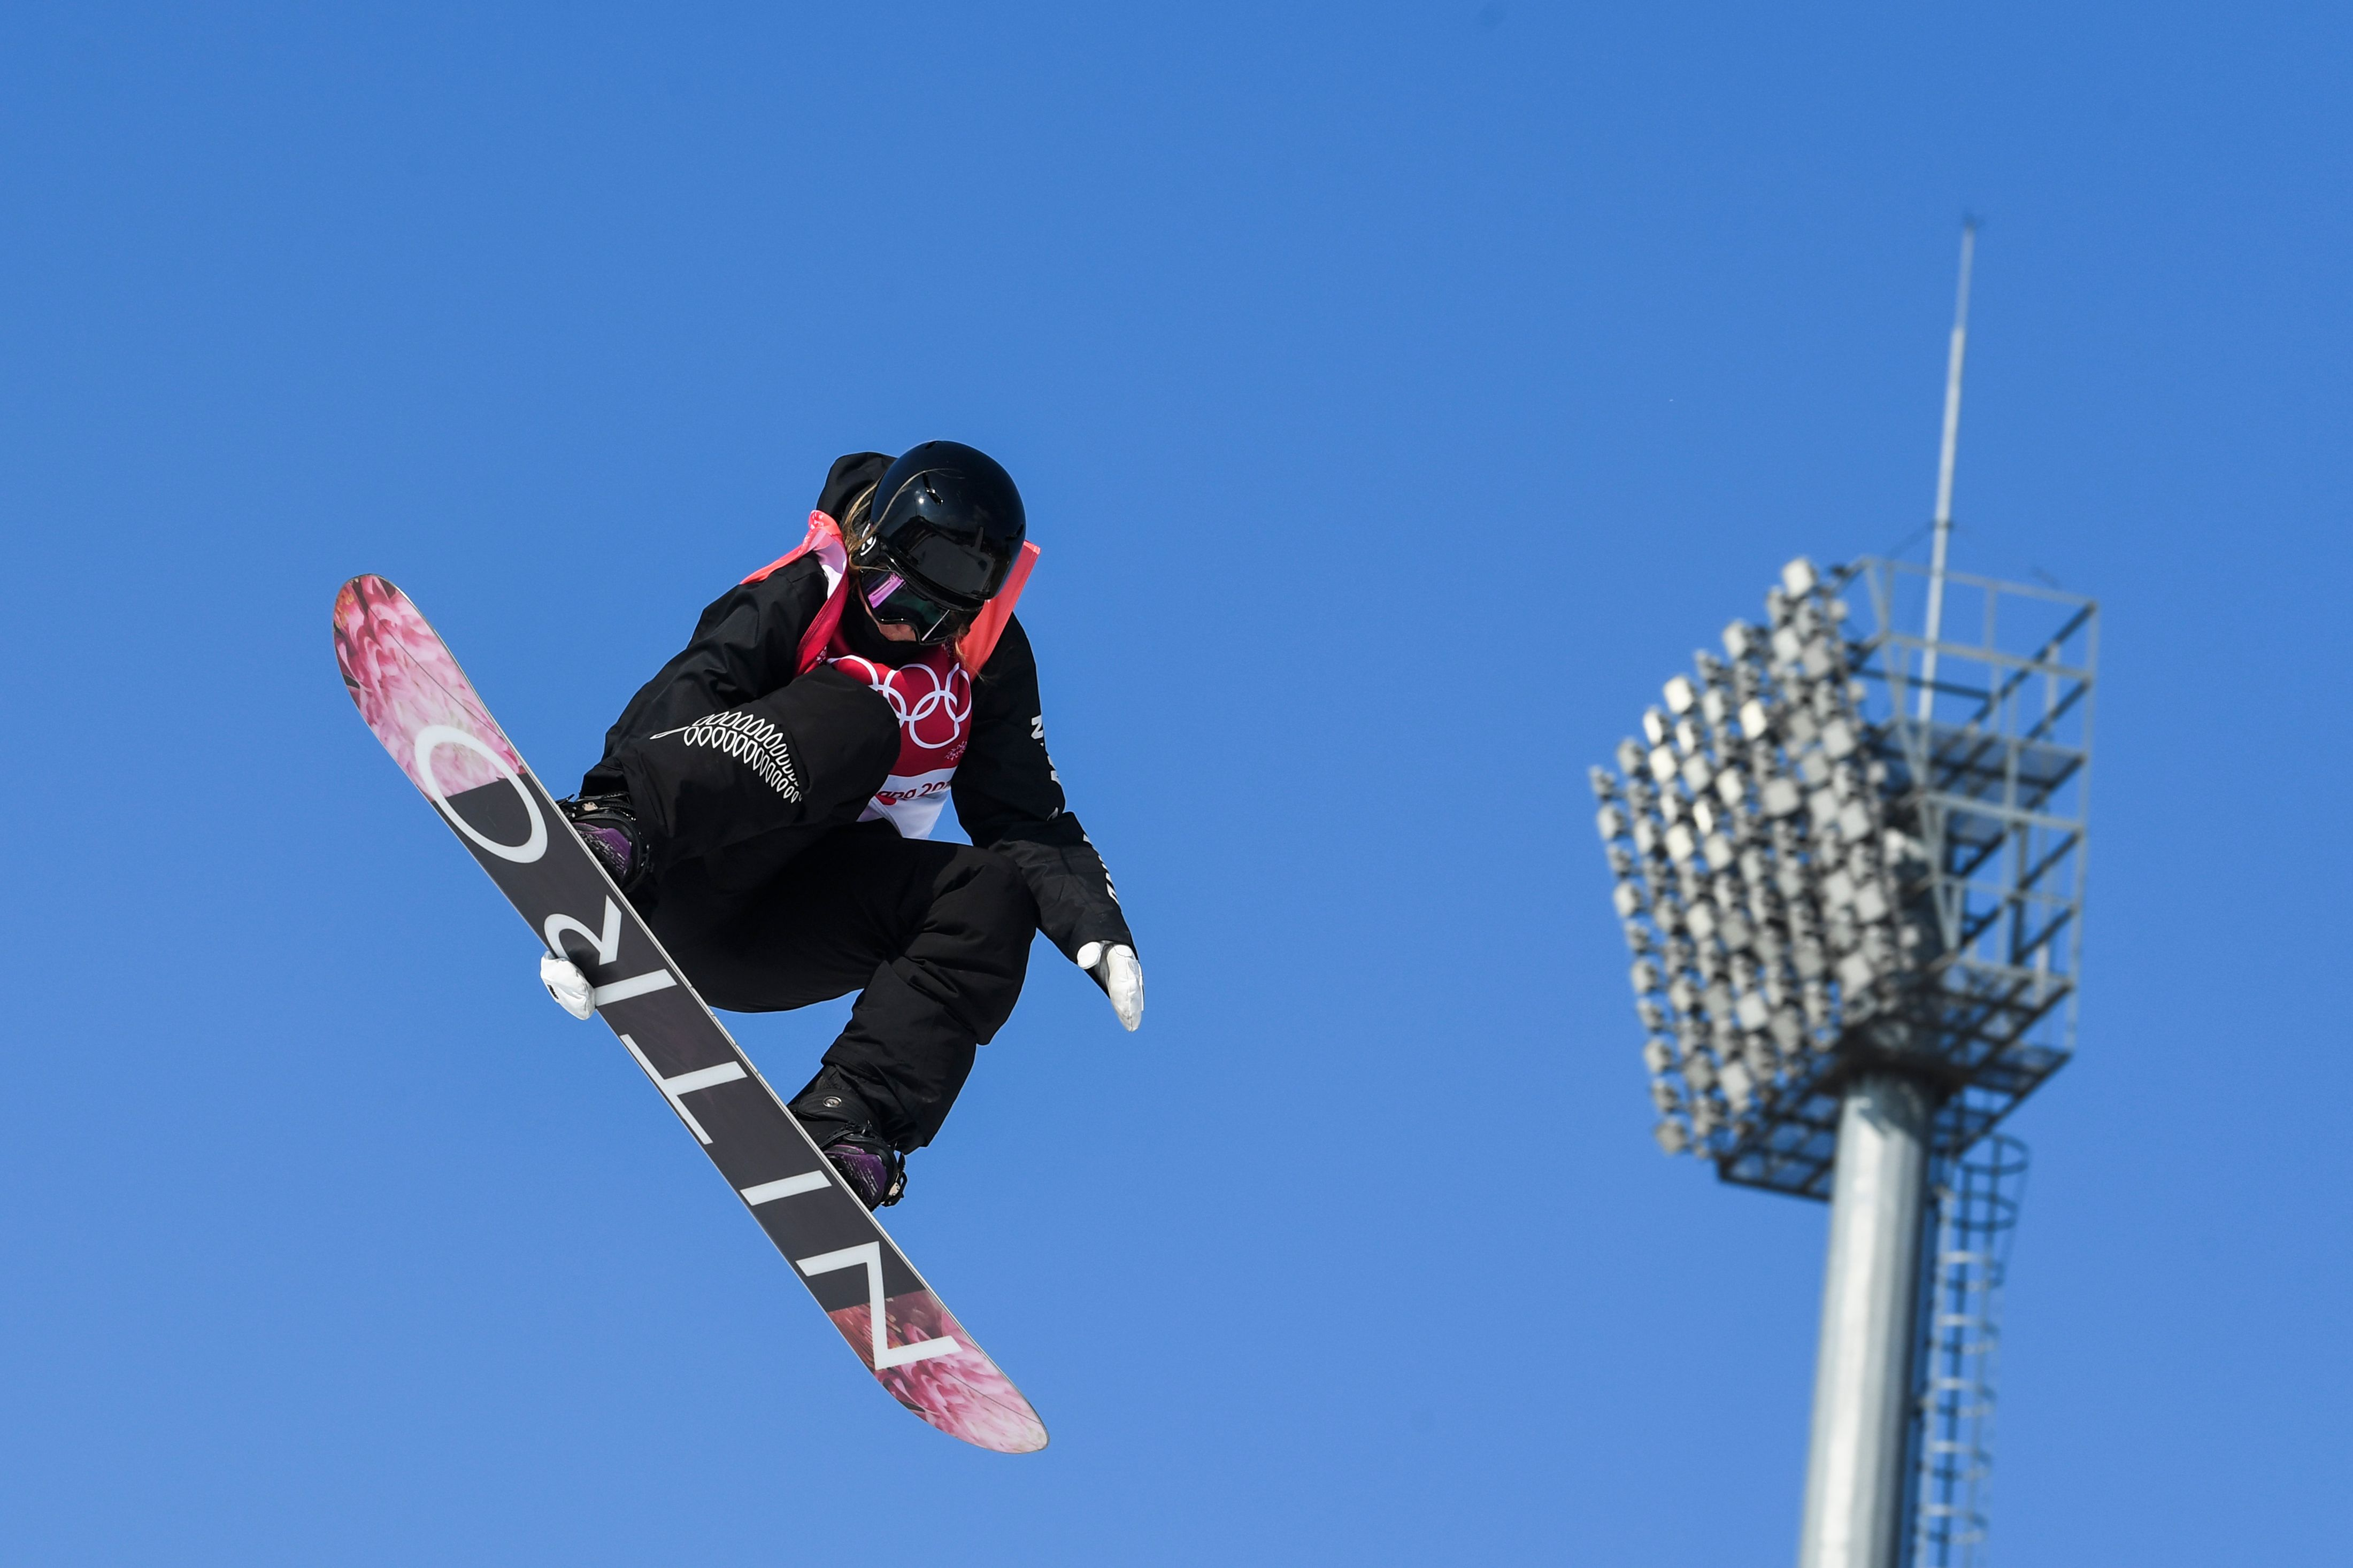 New Zealand's Zoi Sadowski Synnott competes during the women's snowboard big air final at the Pyeongchang 2018 Winter Olympic Games on Feb. 22, 2018.